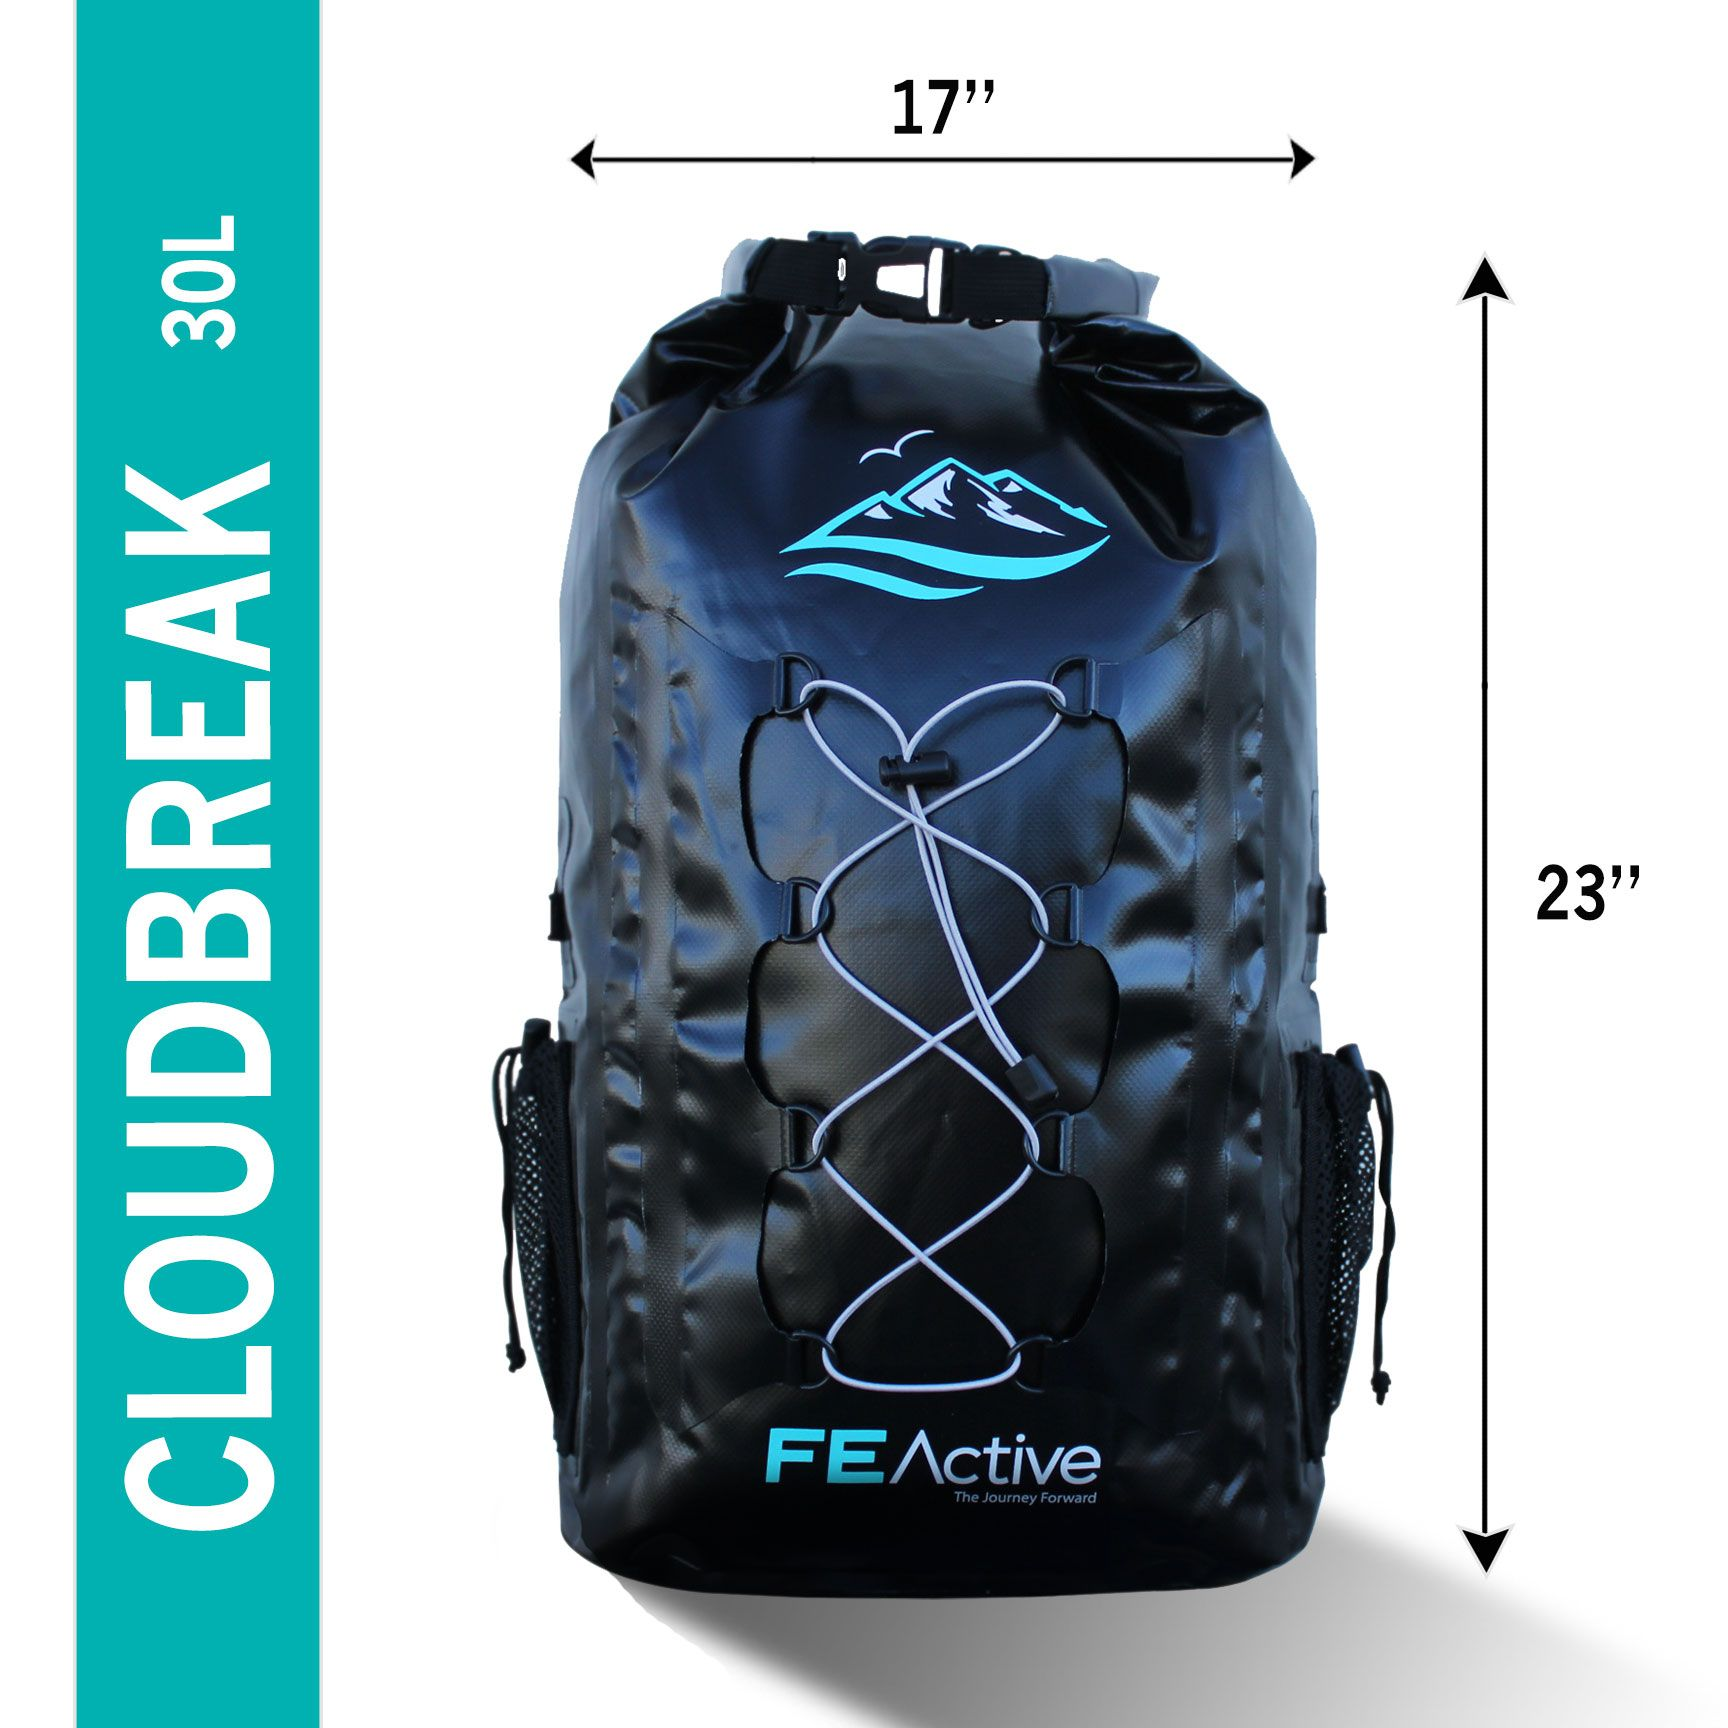 How To Choose The Best Waterproof Backpack For Your Adventures - SplashBest 8203cde97f655